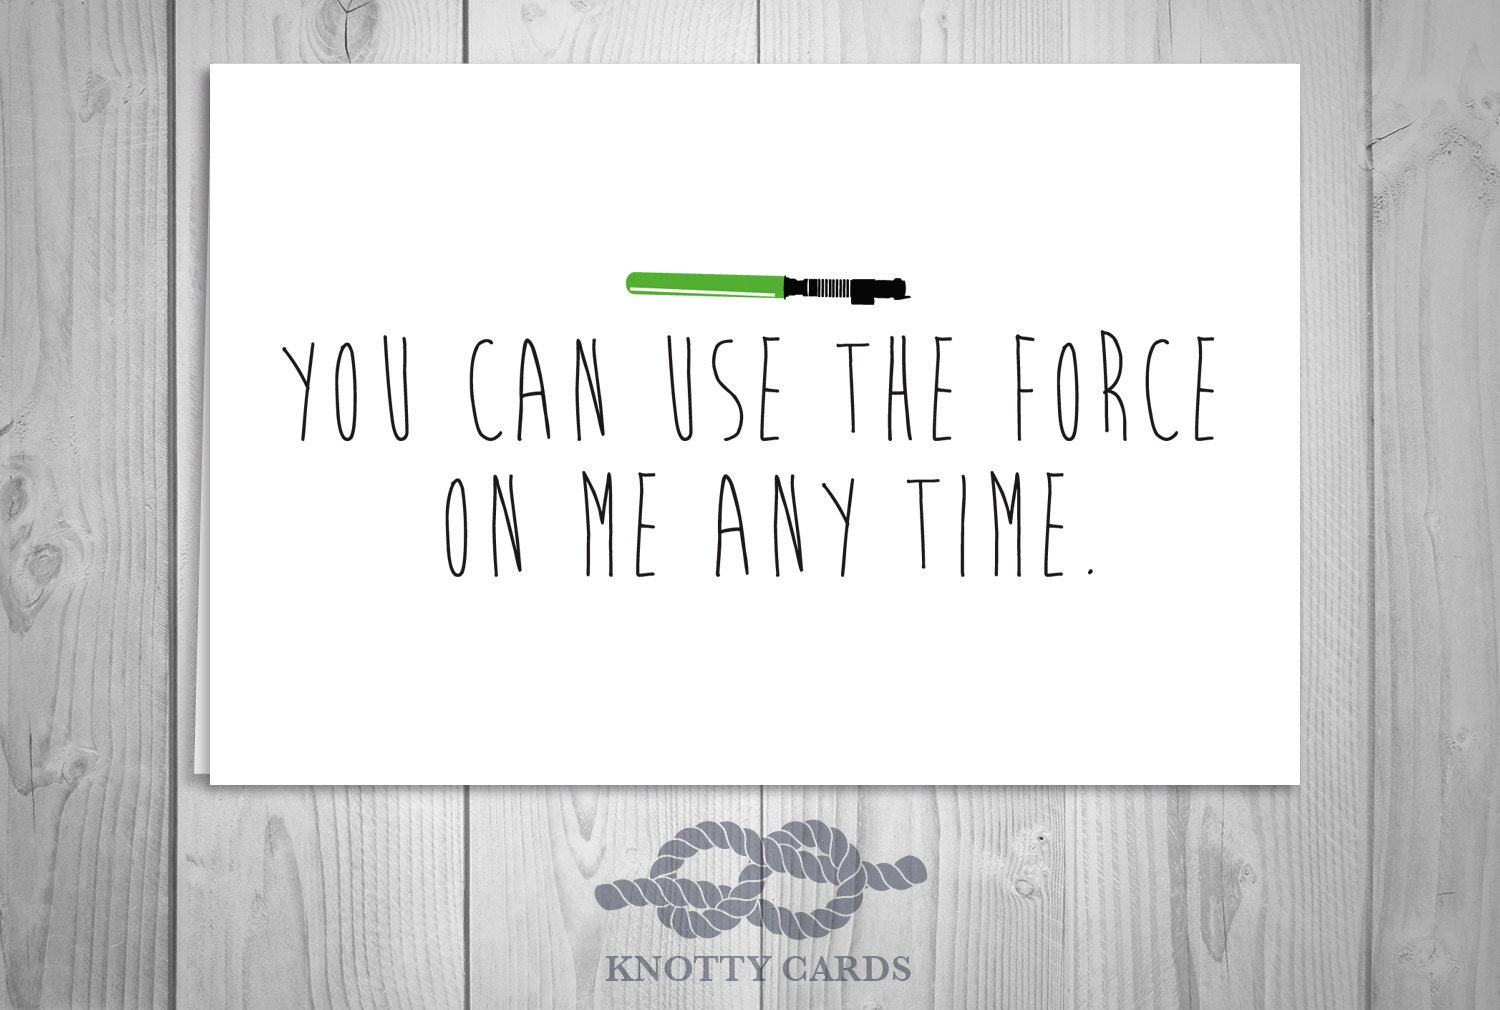 Star Wars Love Quotes Star Wars Love Quotes Extraordinary Best 25 Star Wars Love Quotes